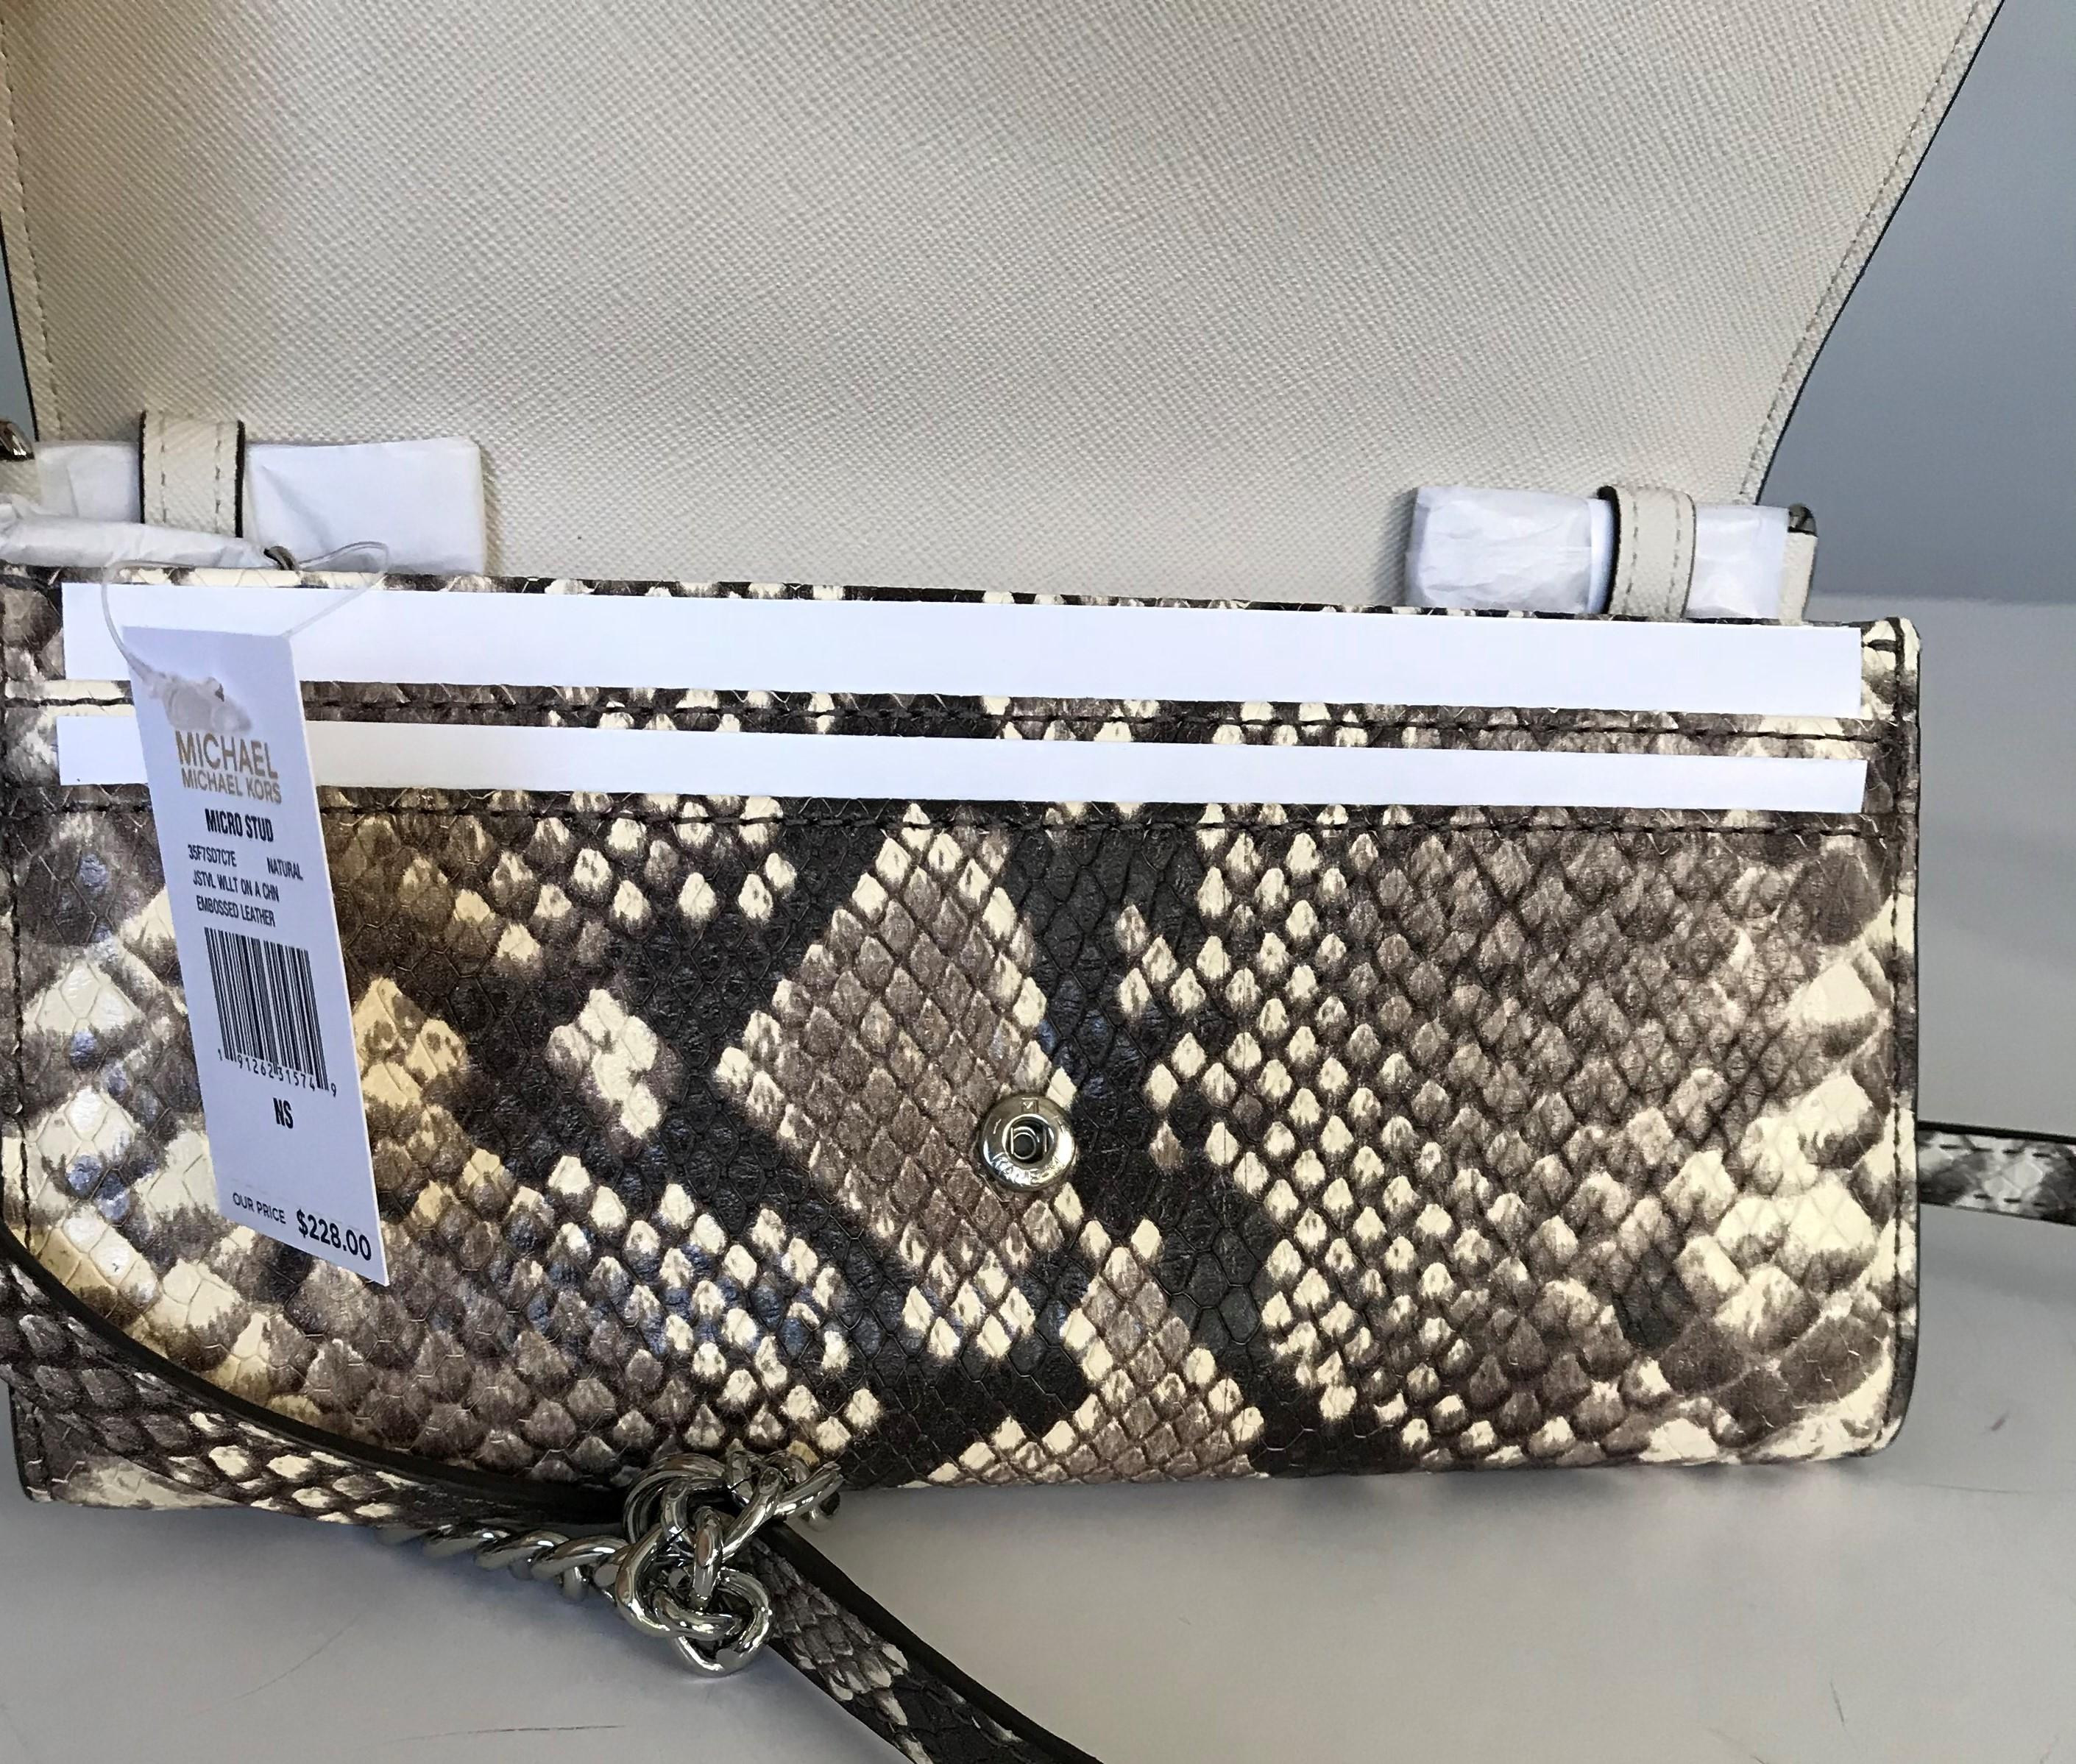 7c98d941a07106 ... ireland michael kors micro stud wallet on chain snake embossed natural  leather cross body bag tradesy ...